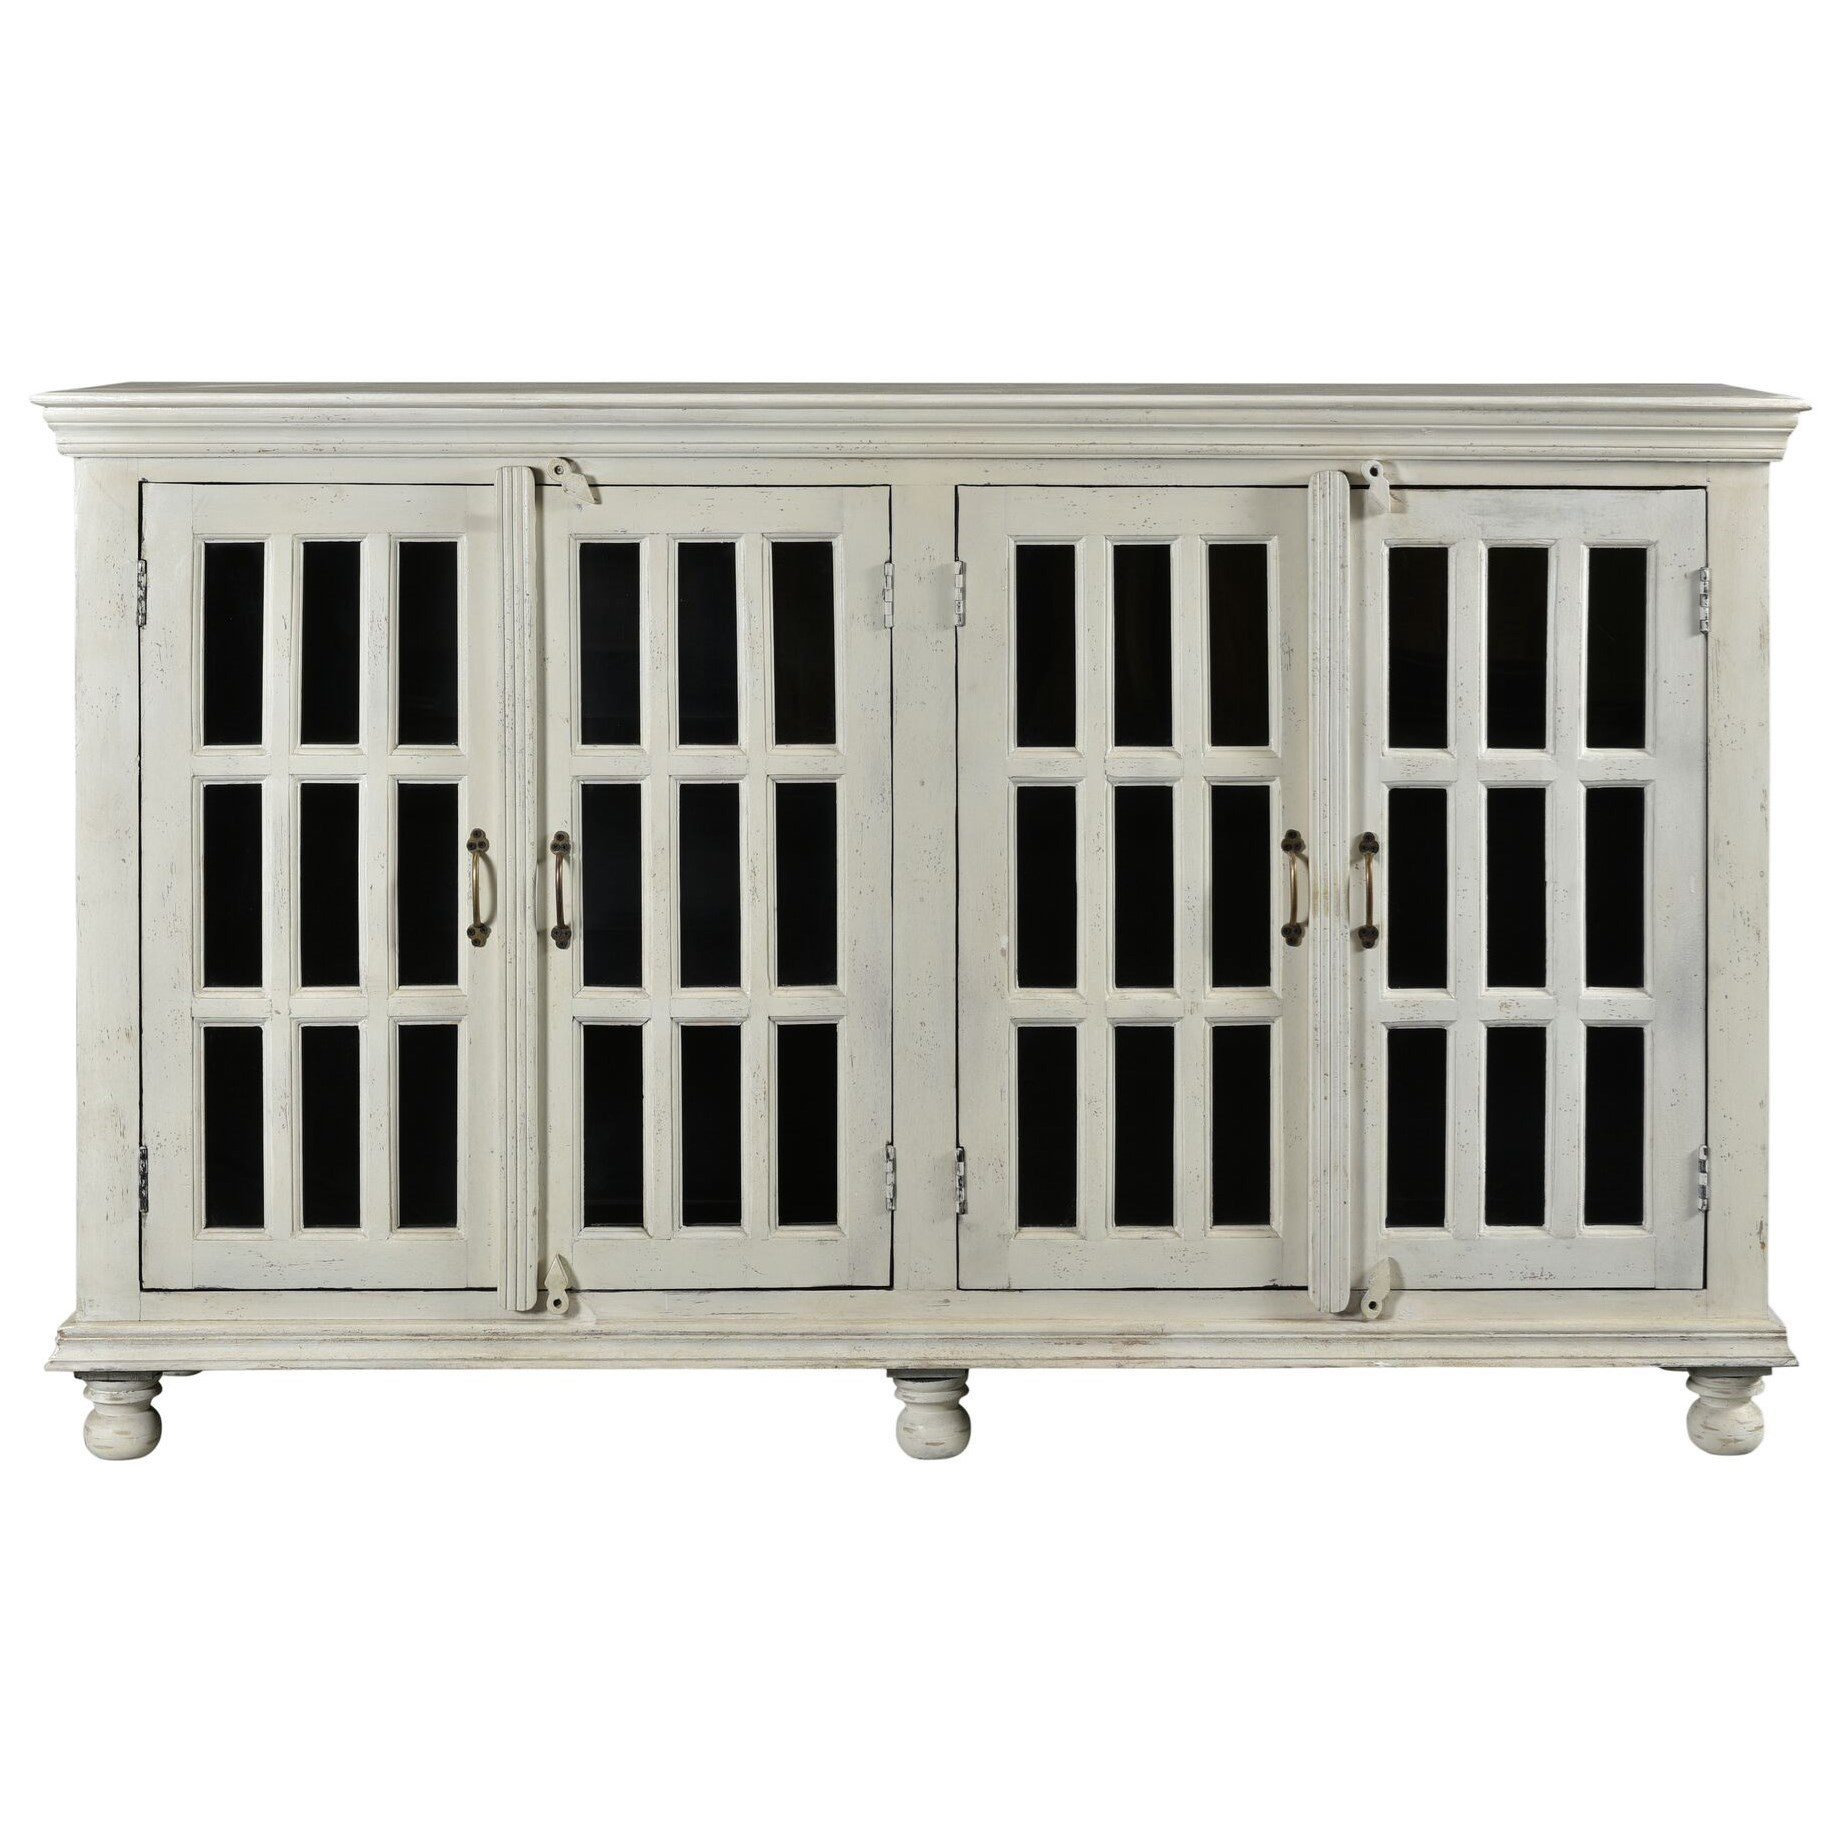 asdf Four Door Credenza by Coast to Coast Imports at Baer's Furniture